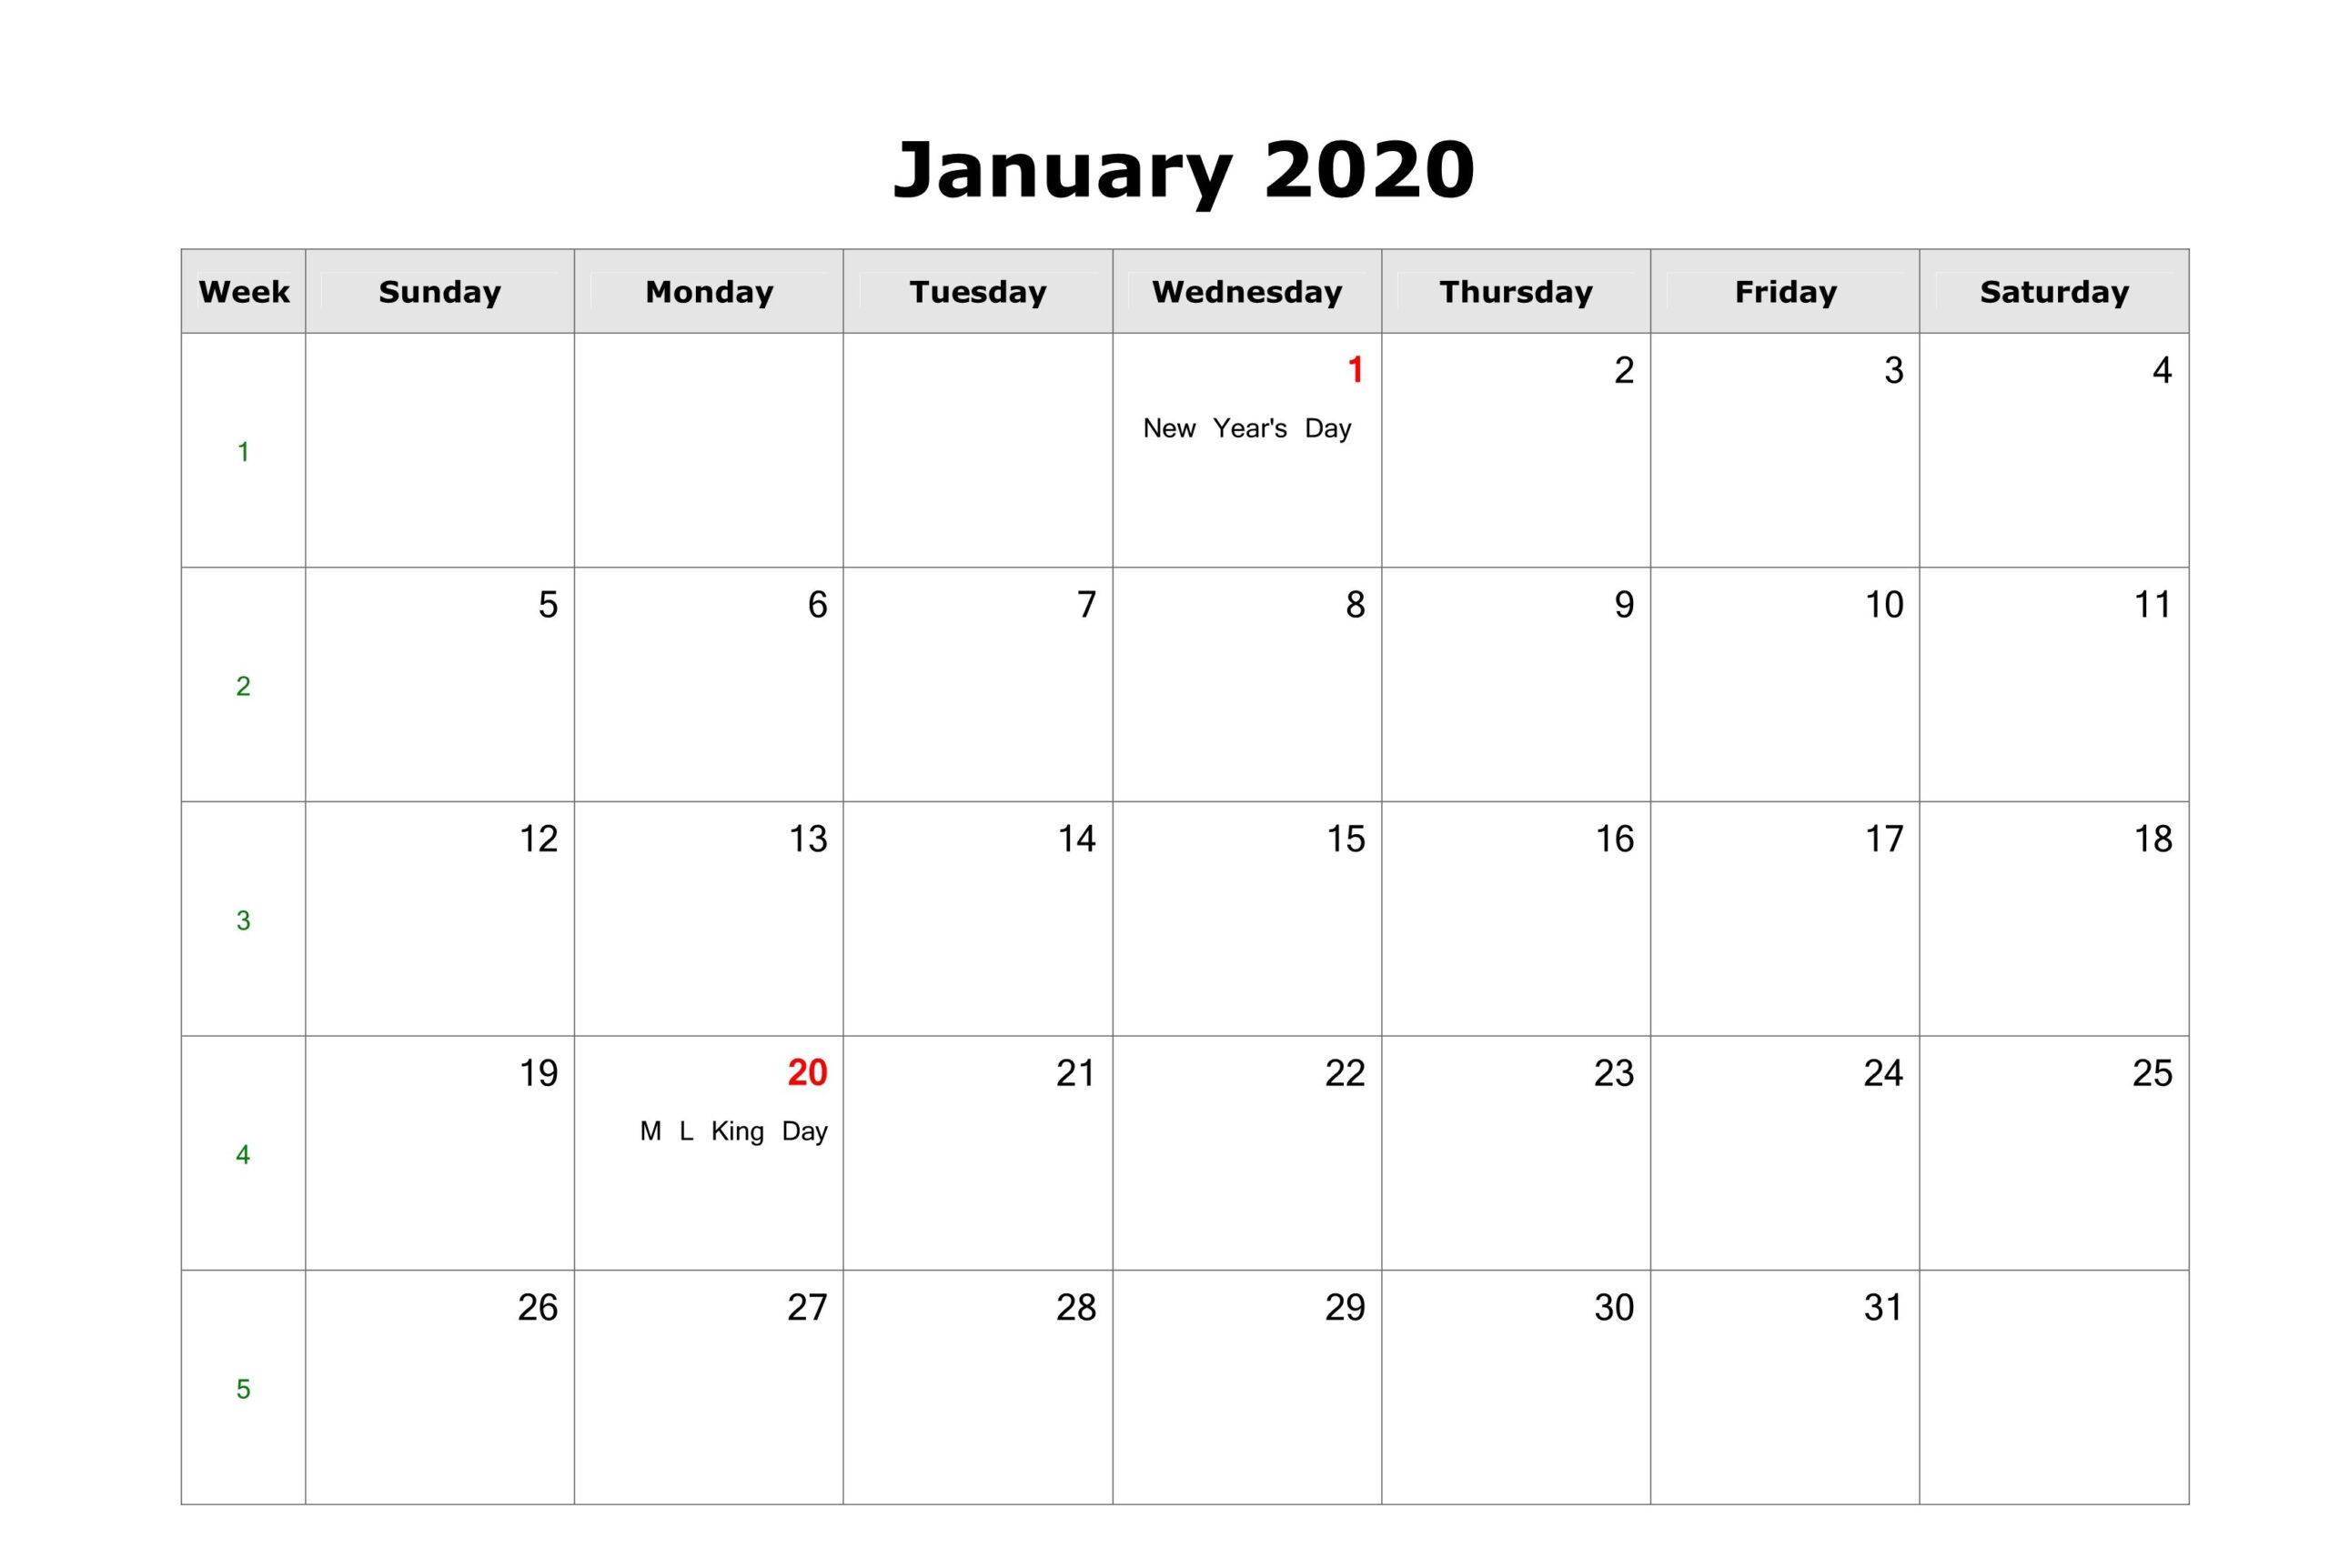 Fillable January Calendar 2020 Printable Editable With Notes